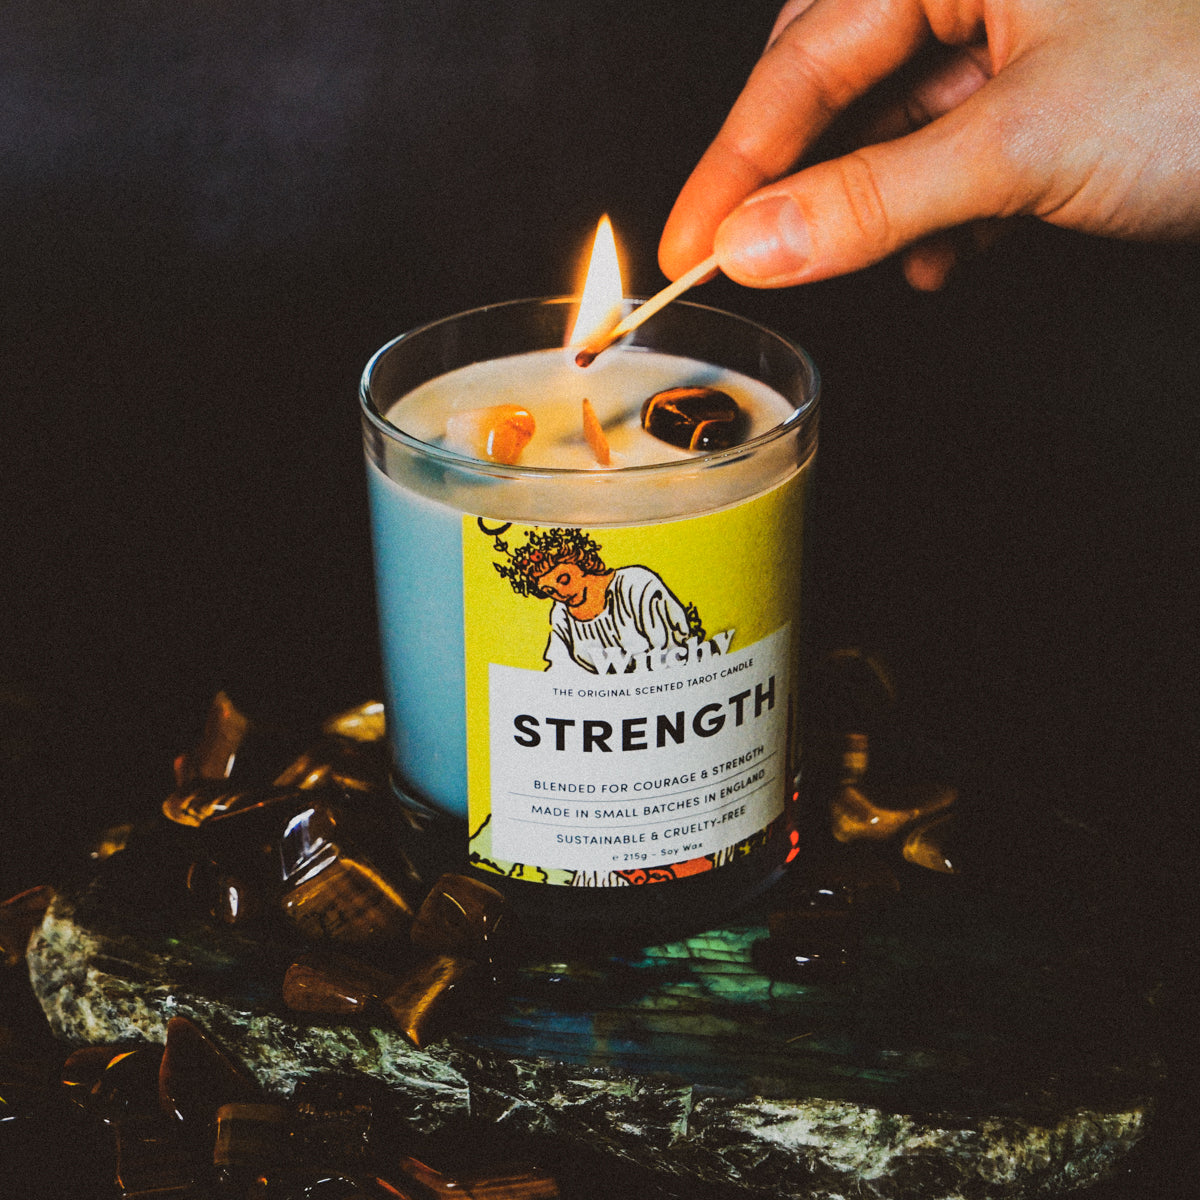 Strength Tarot Candle for Courage & Strength